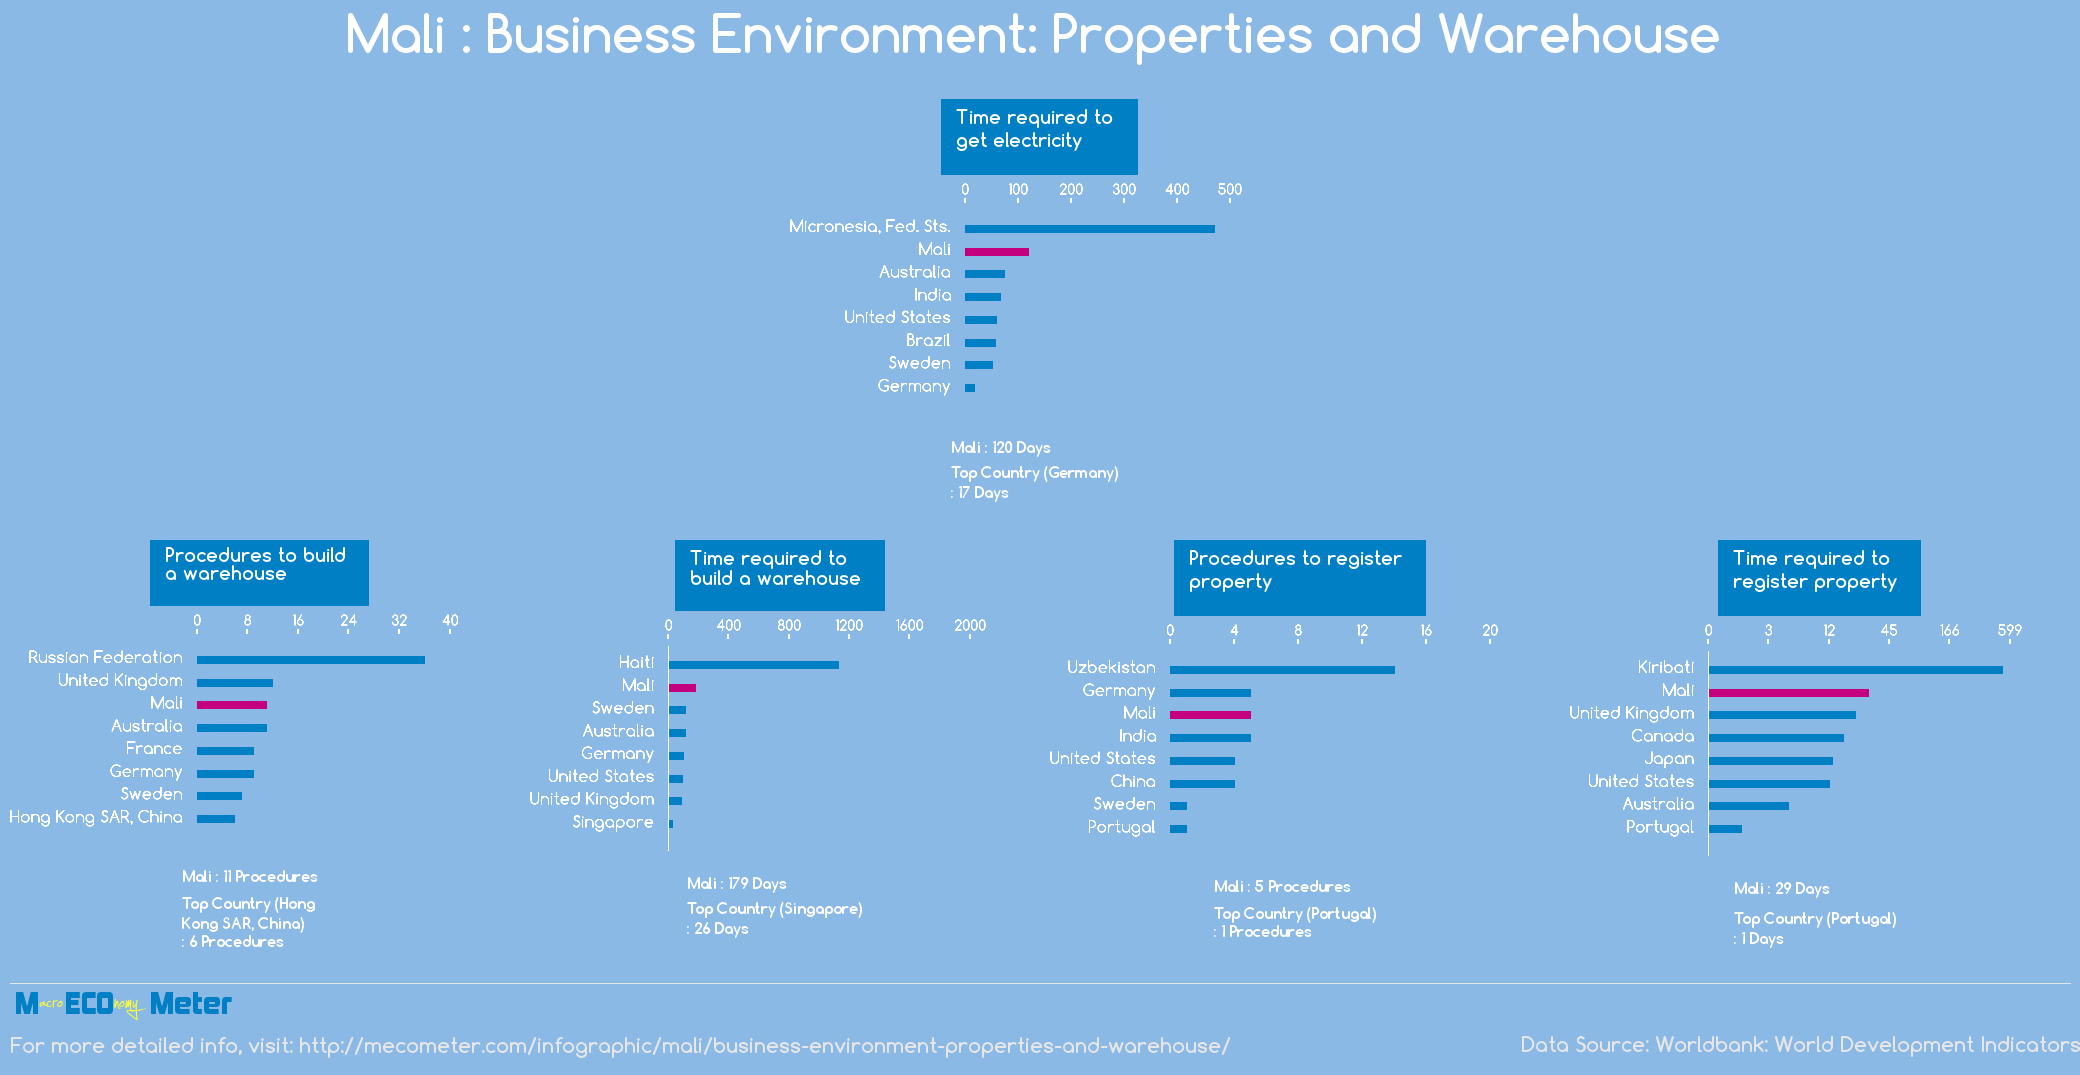 Mali : Business Environment: Properties and Warehouse